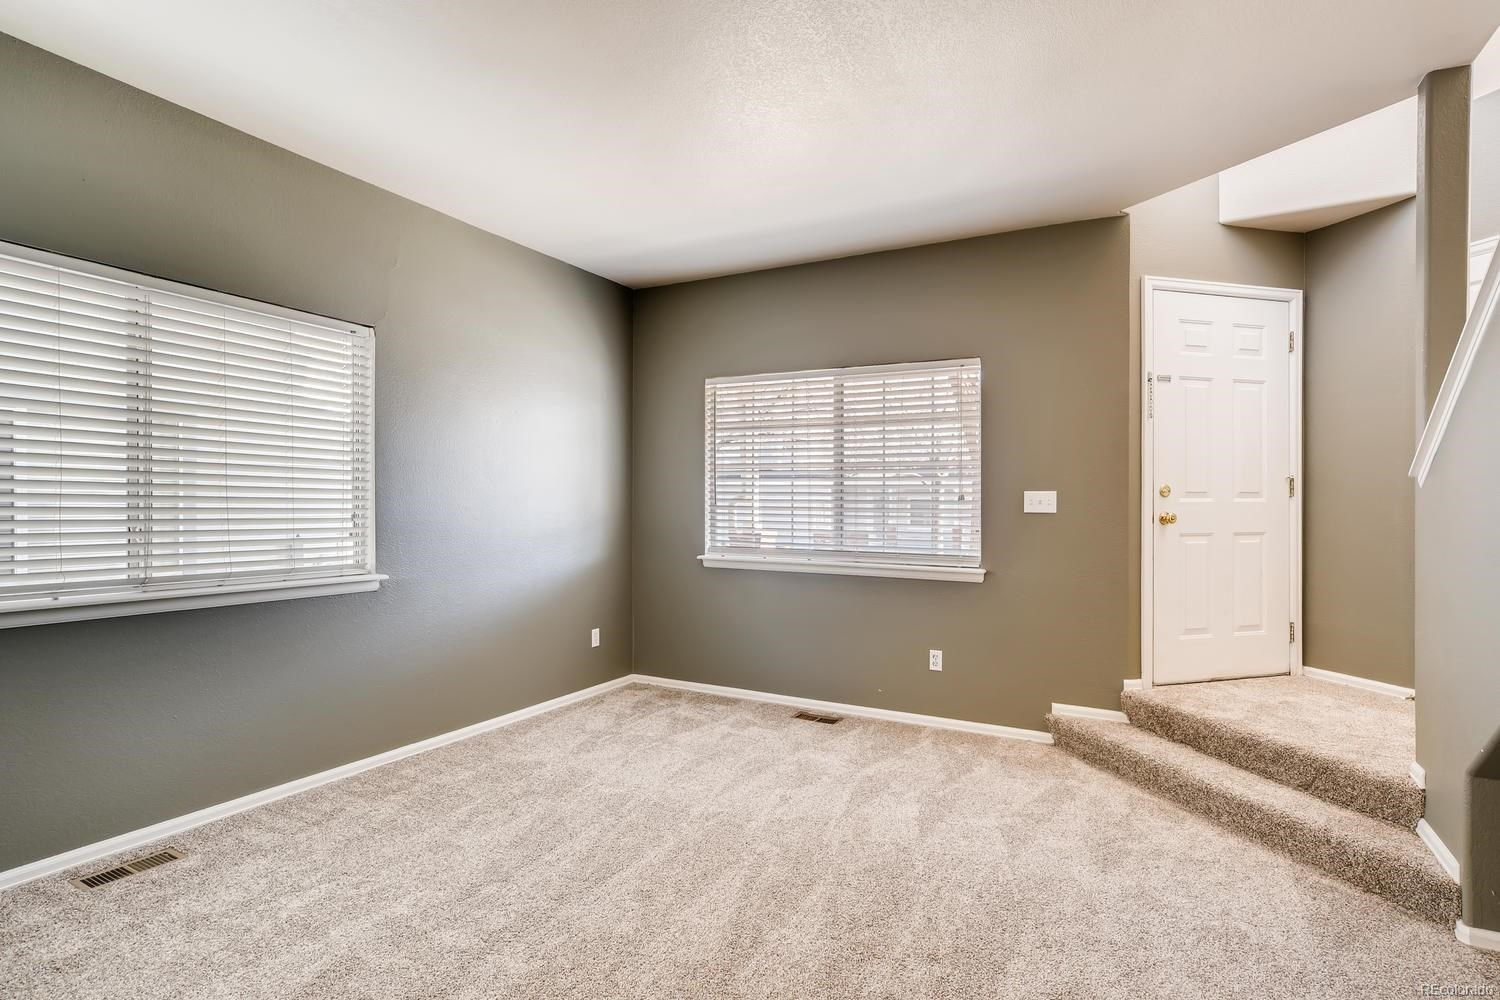 MLS# 7435178 - 7 - 3926 Christy Heights, Colorado Springs, CO 80906